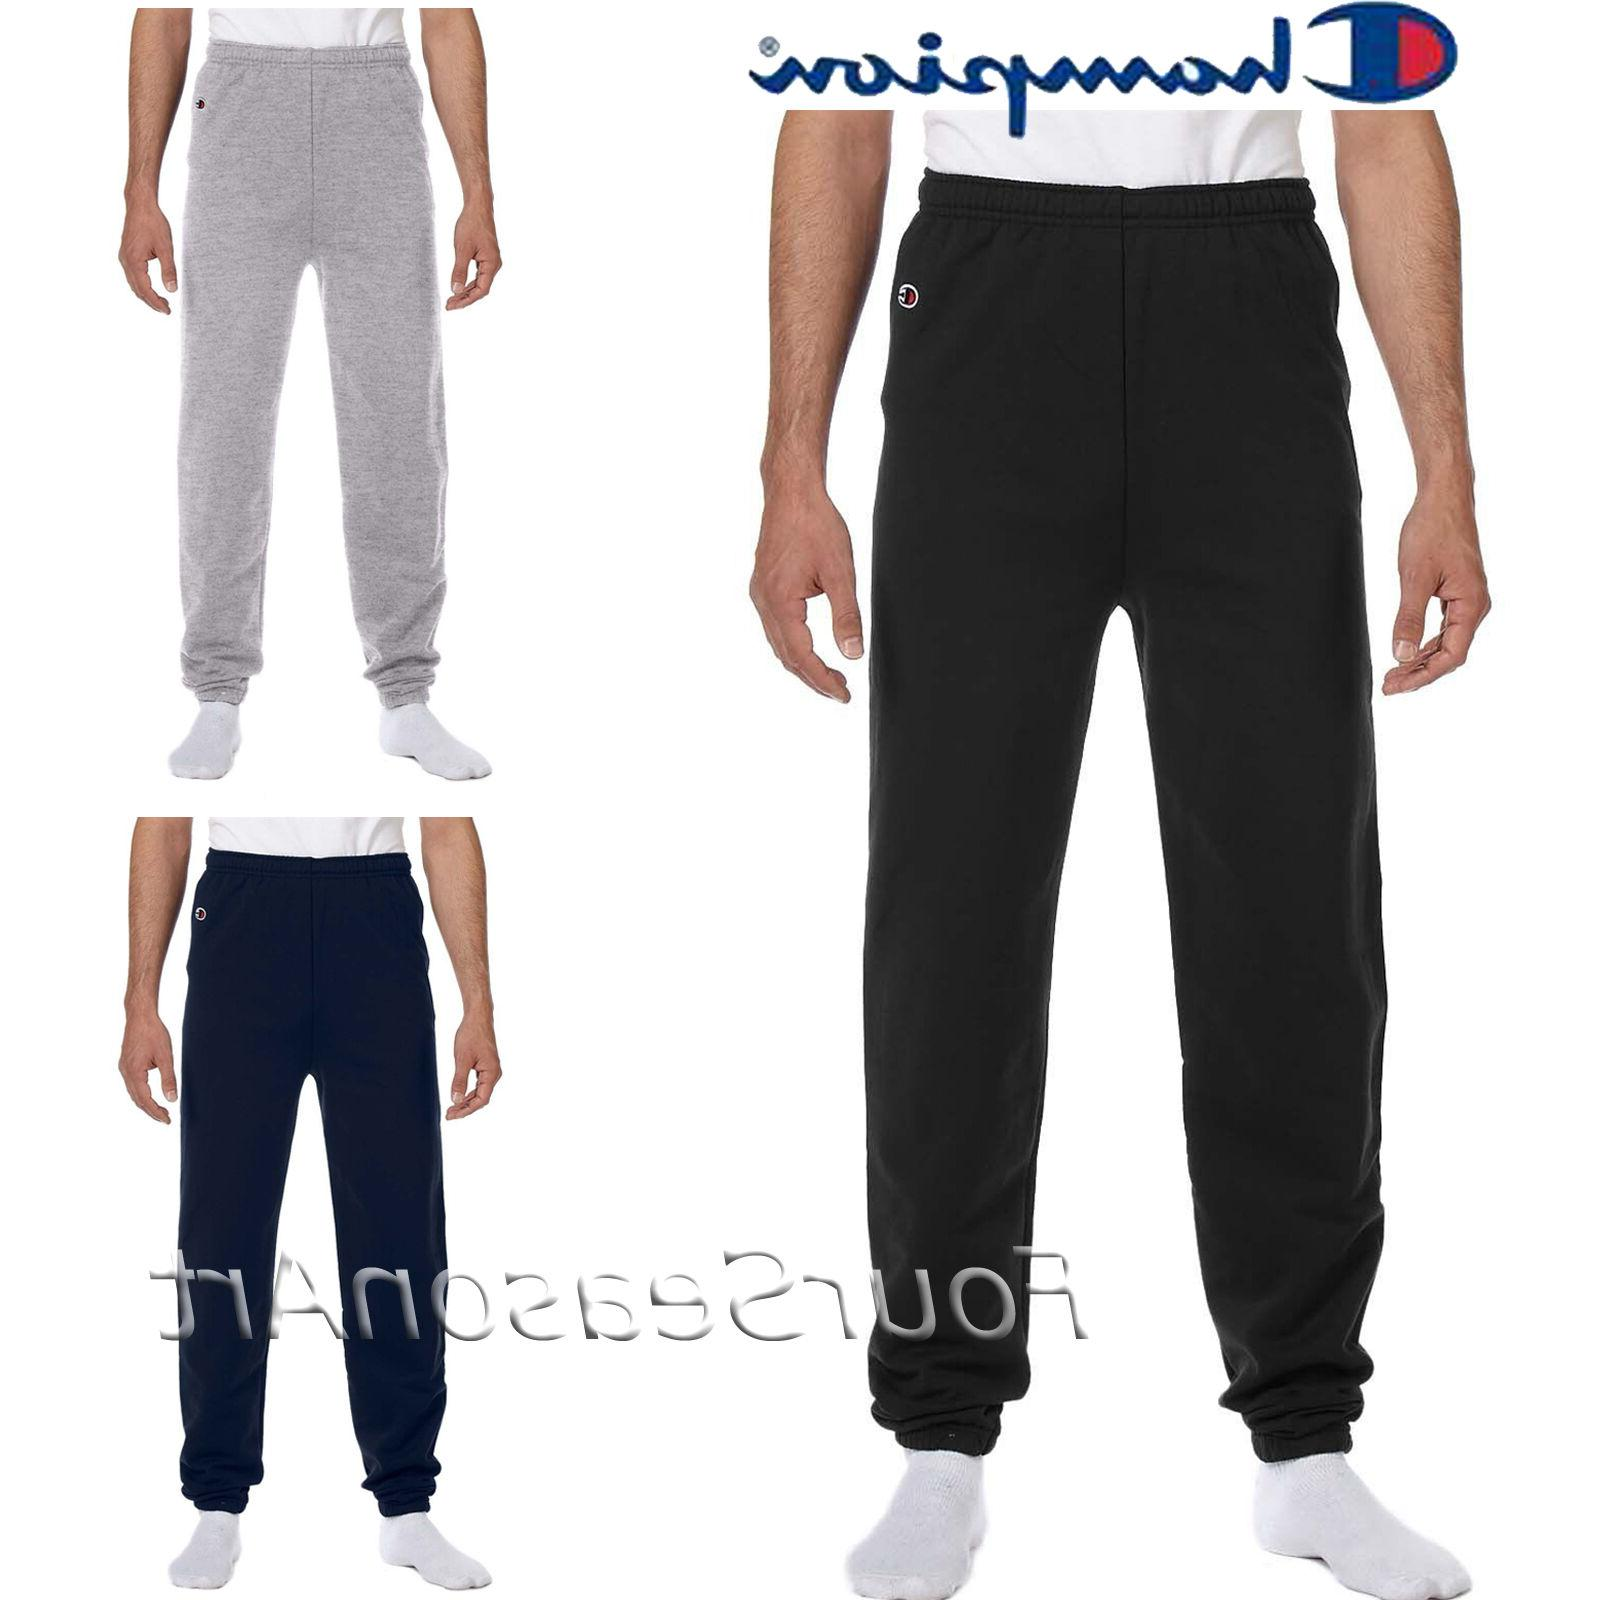 mens elastic athletic eco blend sweatpants s